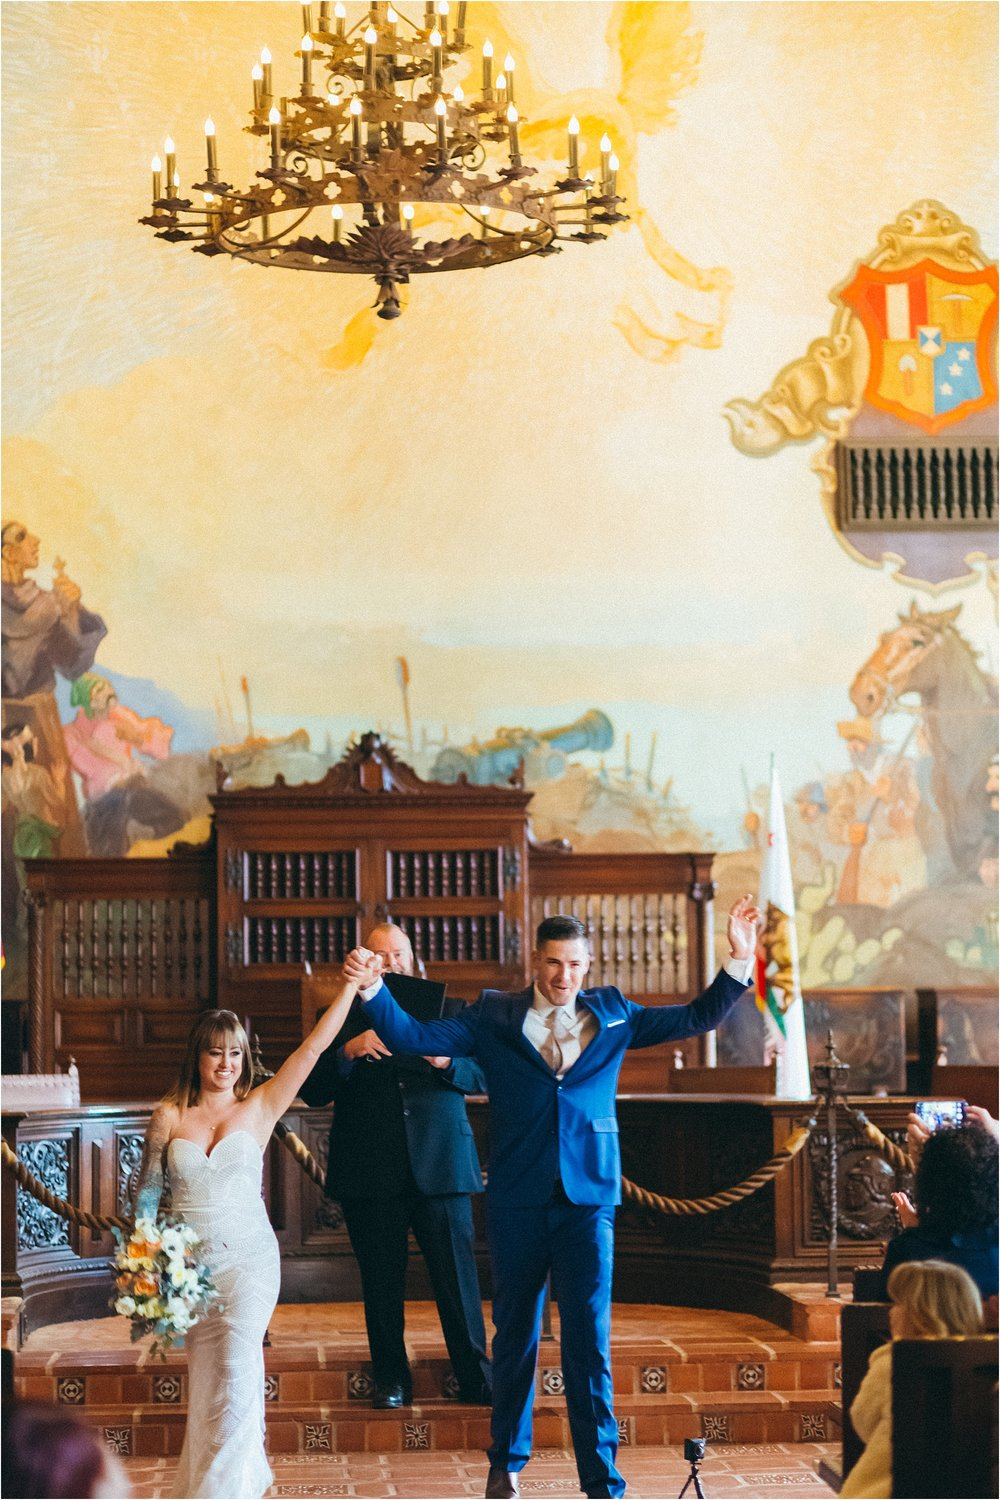 angie-diaz-photography-santa-barbara-courthouse-california-hawaii-wedding-photographer_0052.jpg